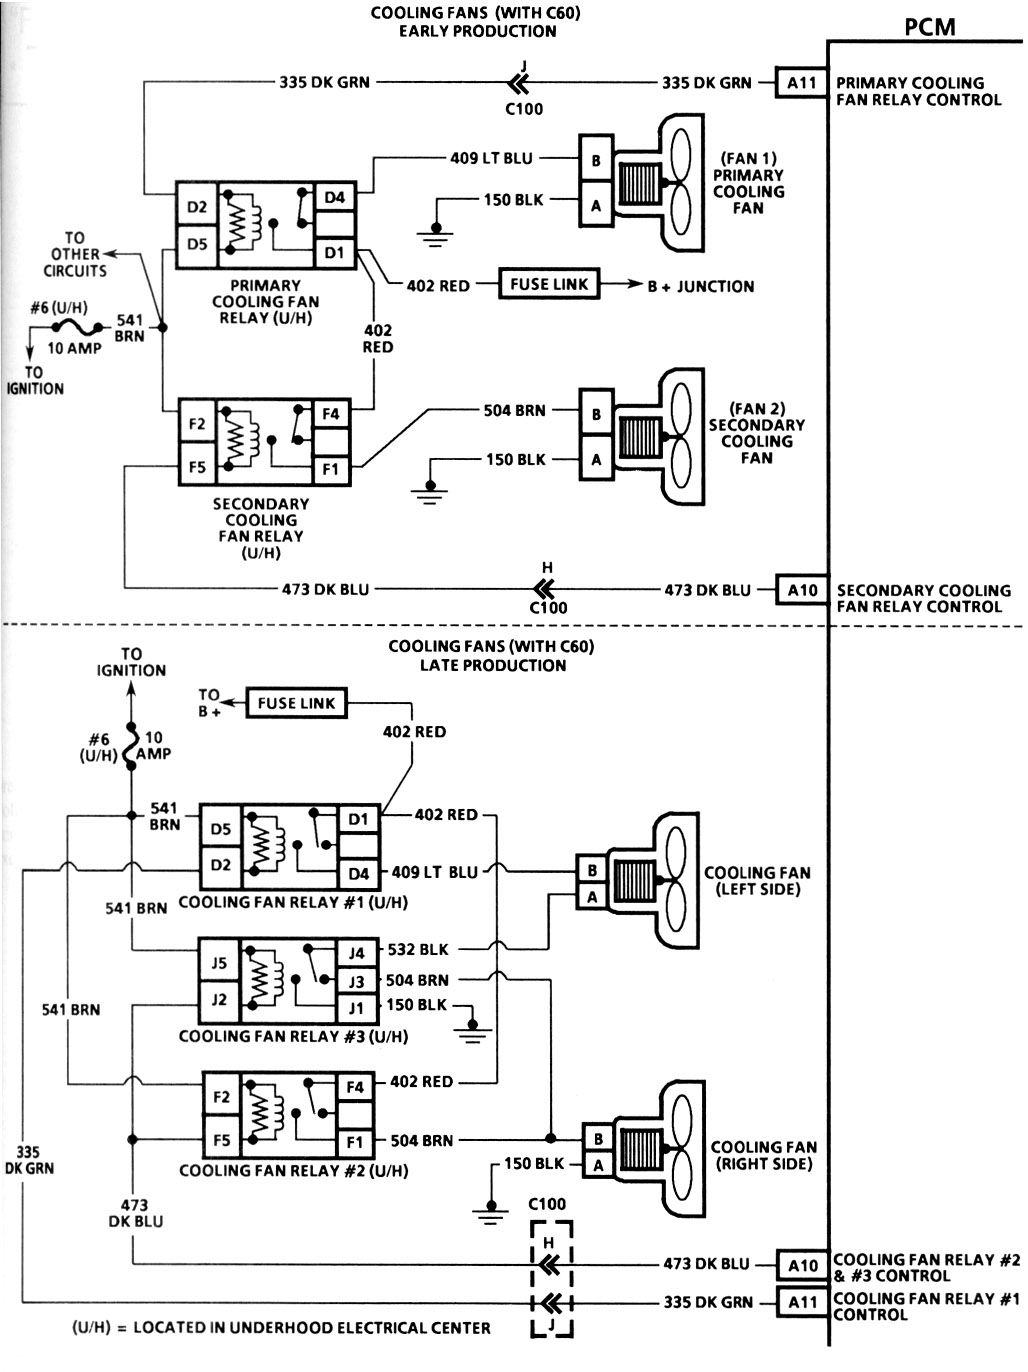 1985 Chevy Camaro Wiring Diagram Image Details 85 Firebird Ignition 1995 Cooling Fan